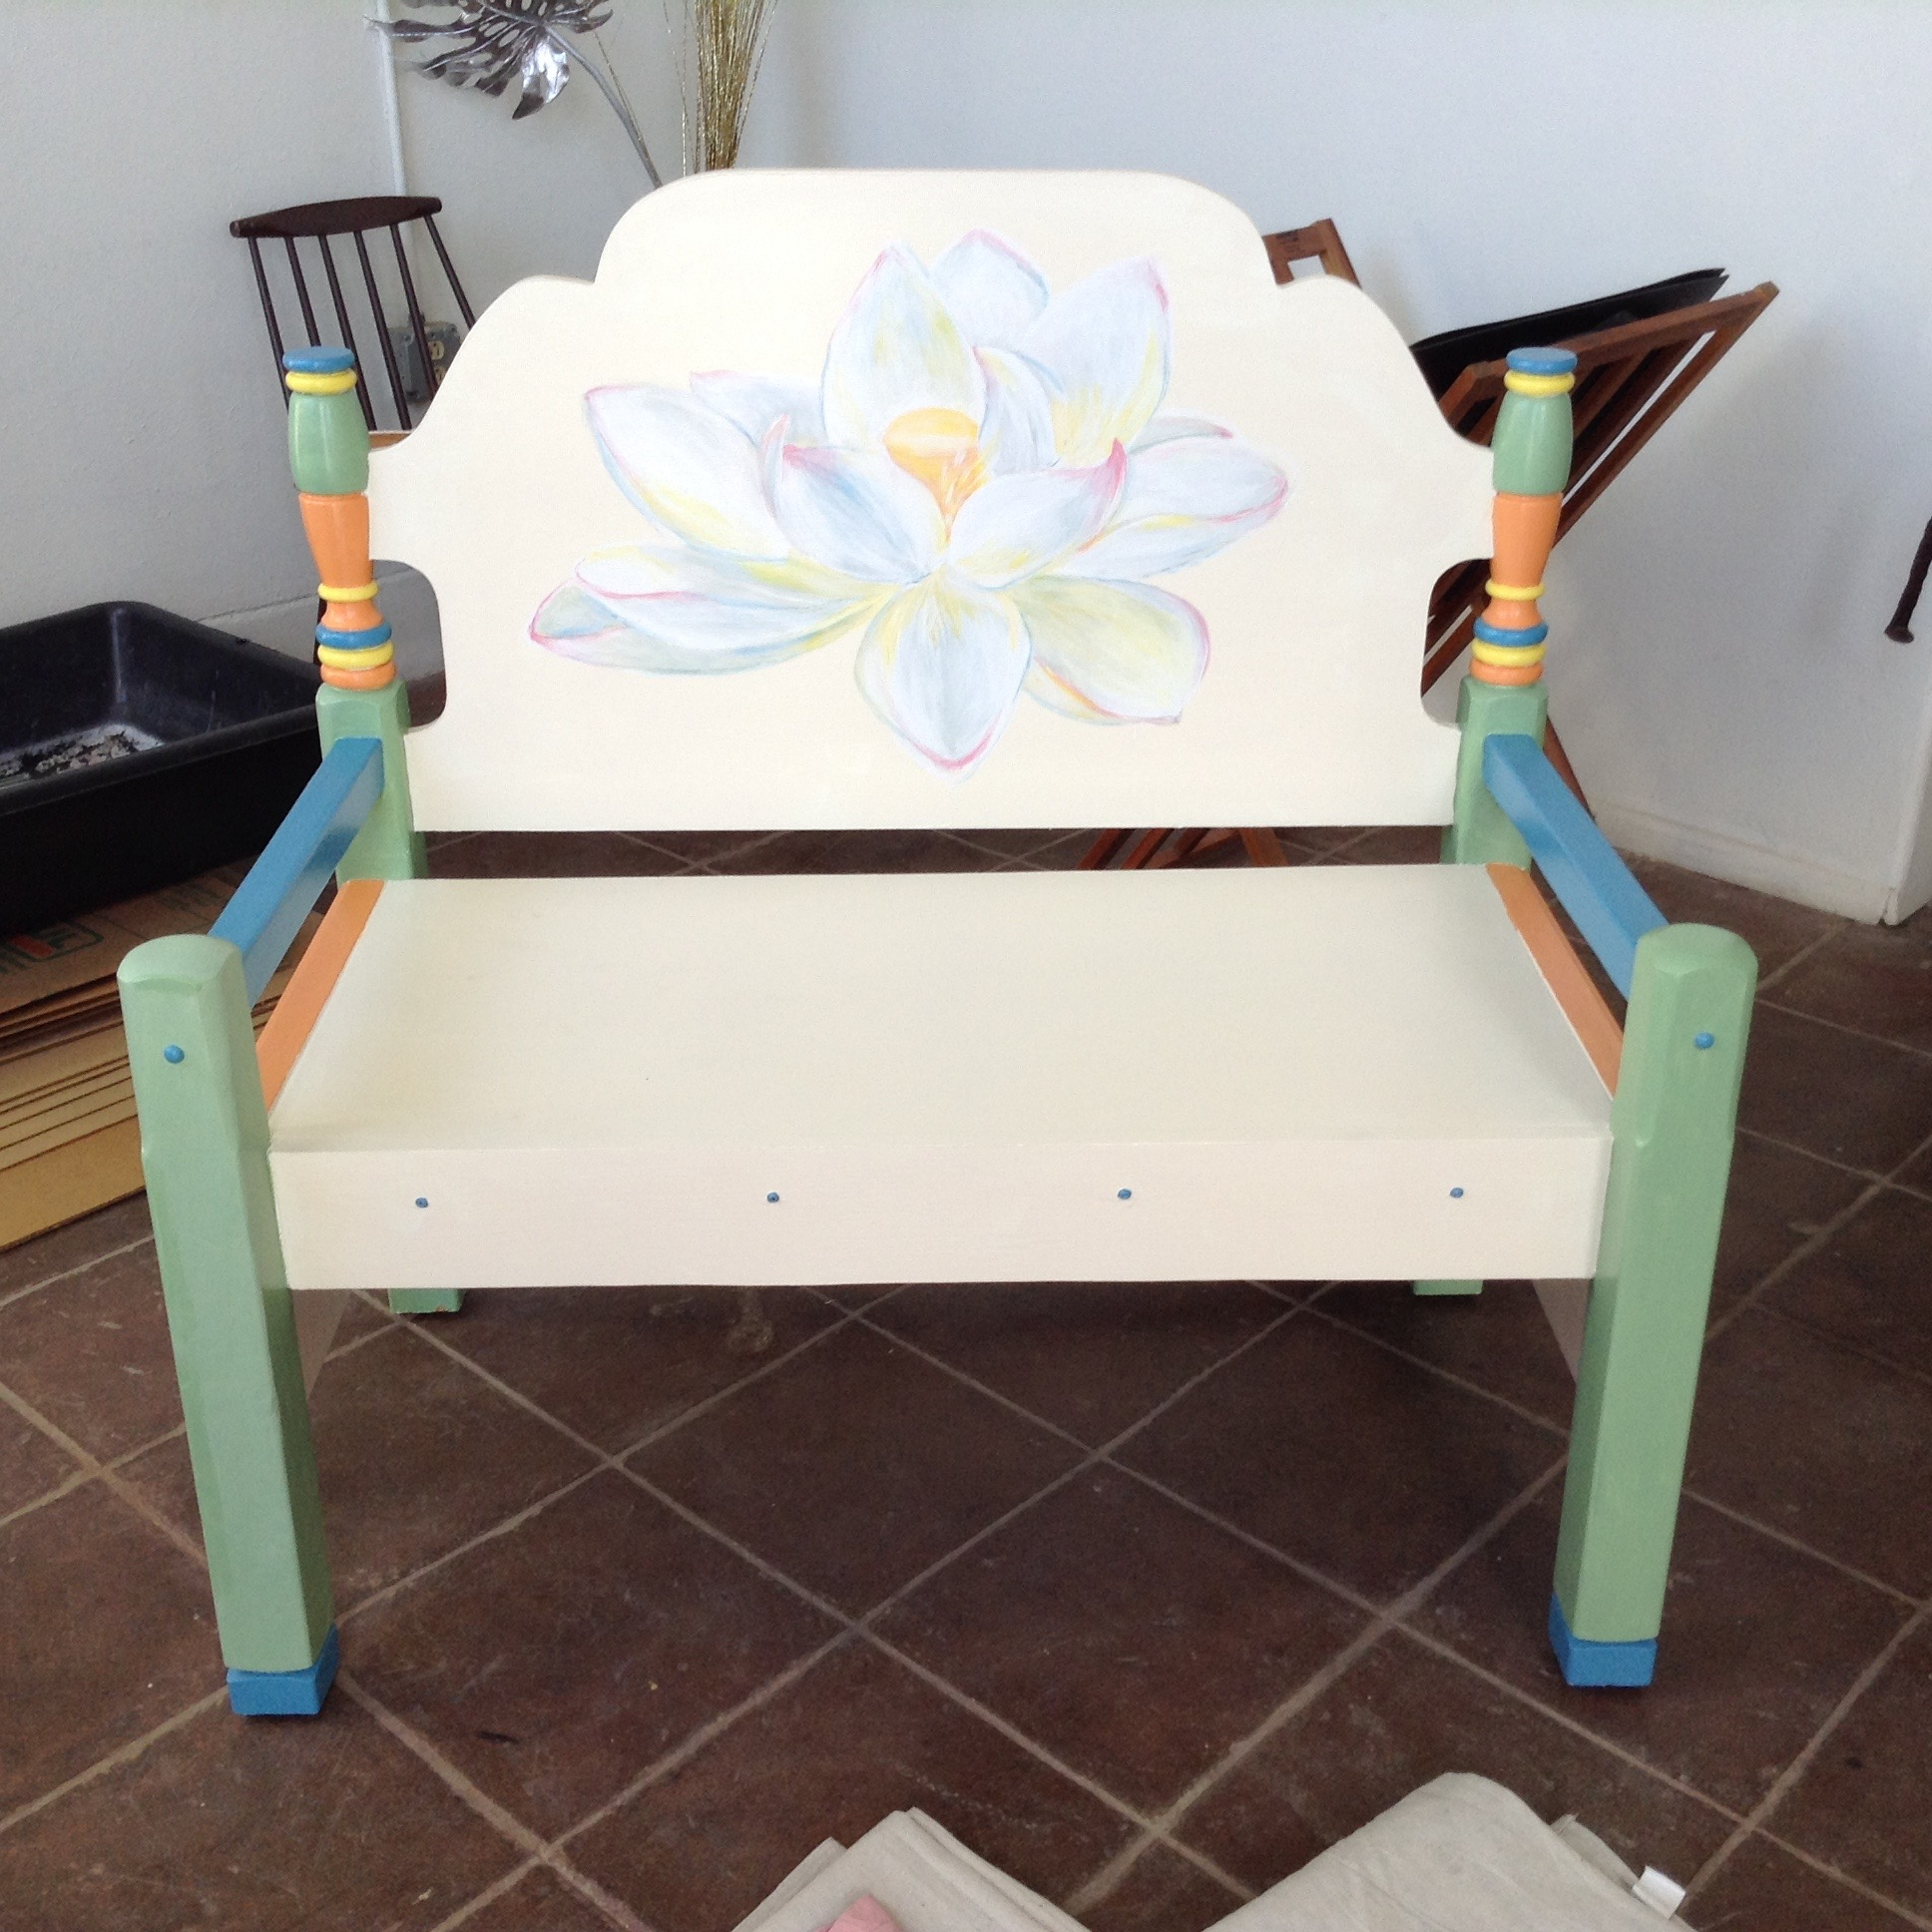 The painted lotus-flower bench.